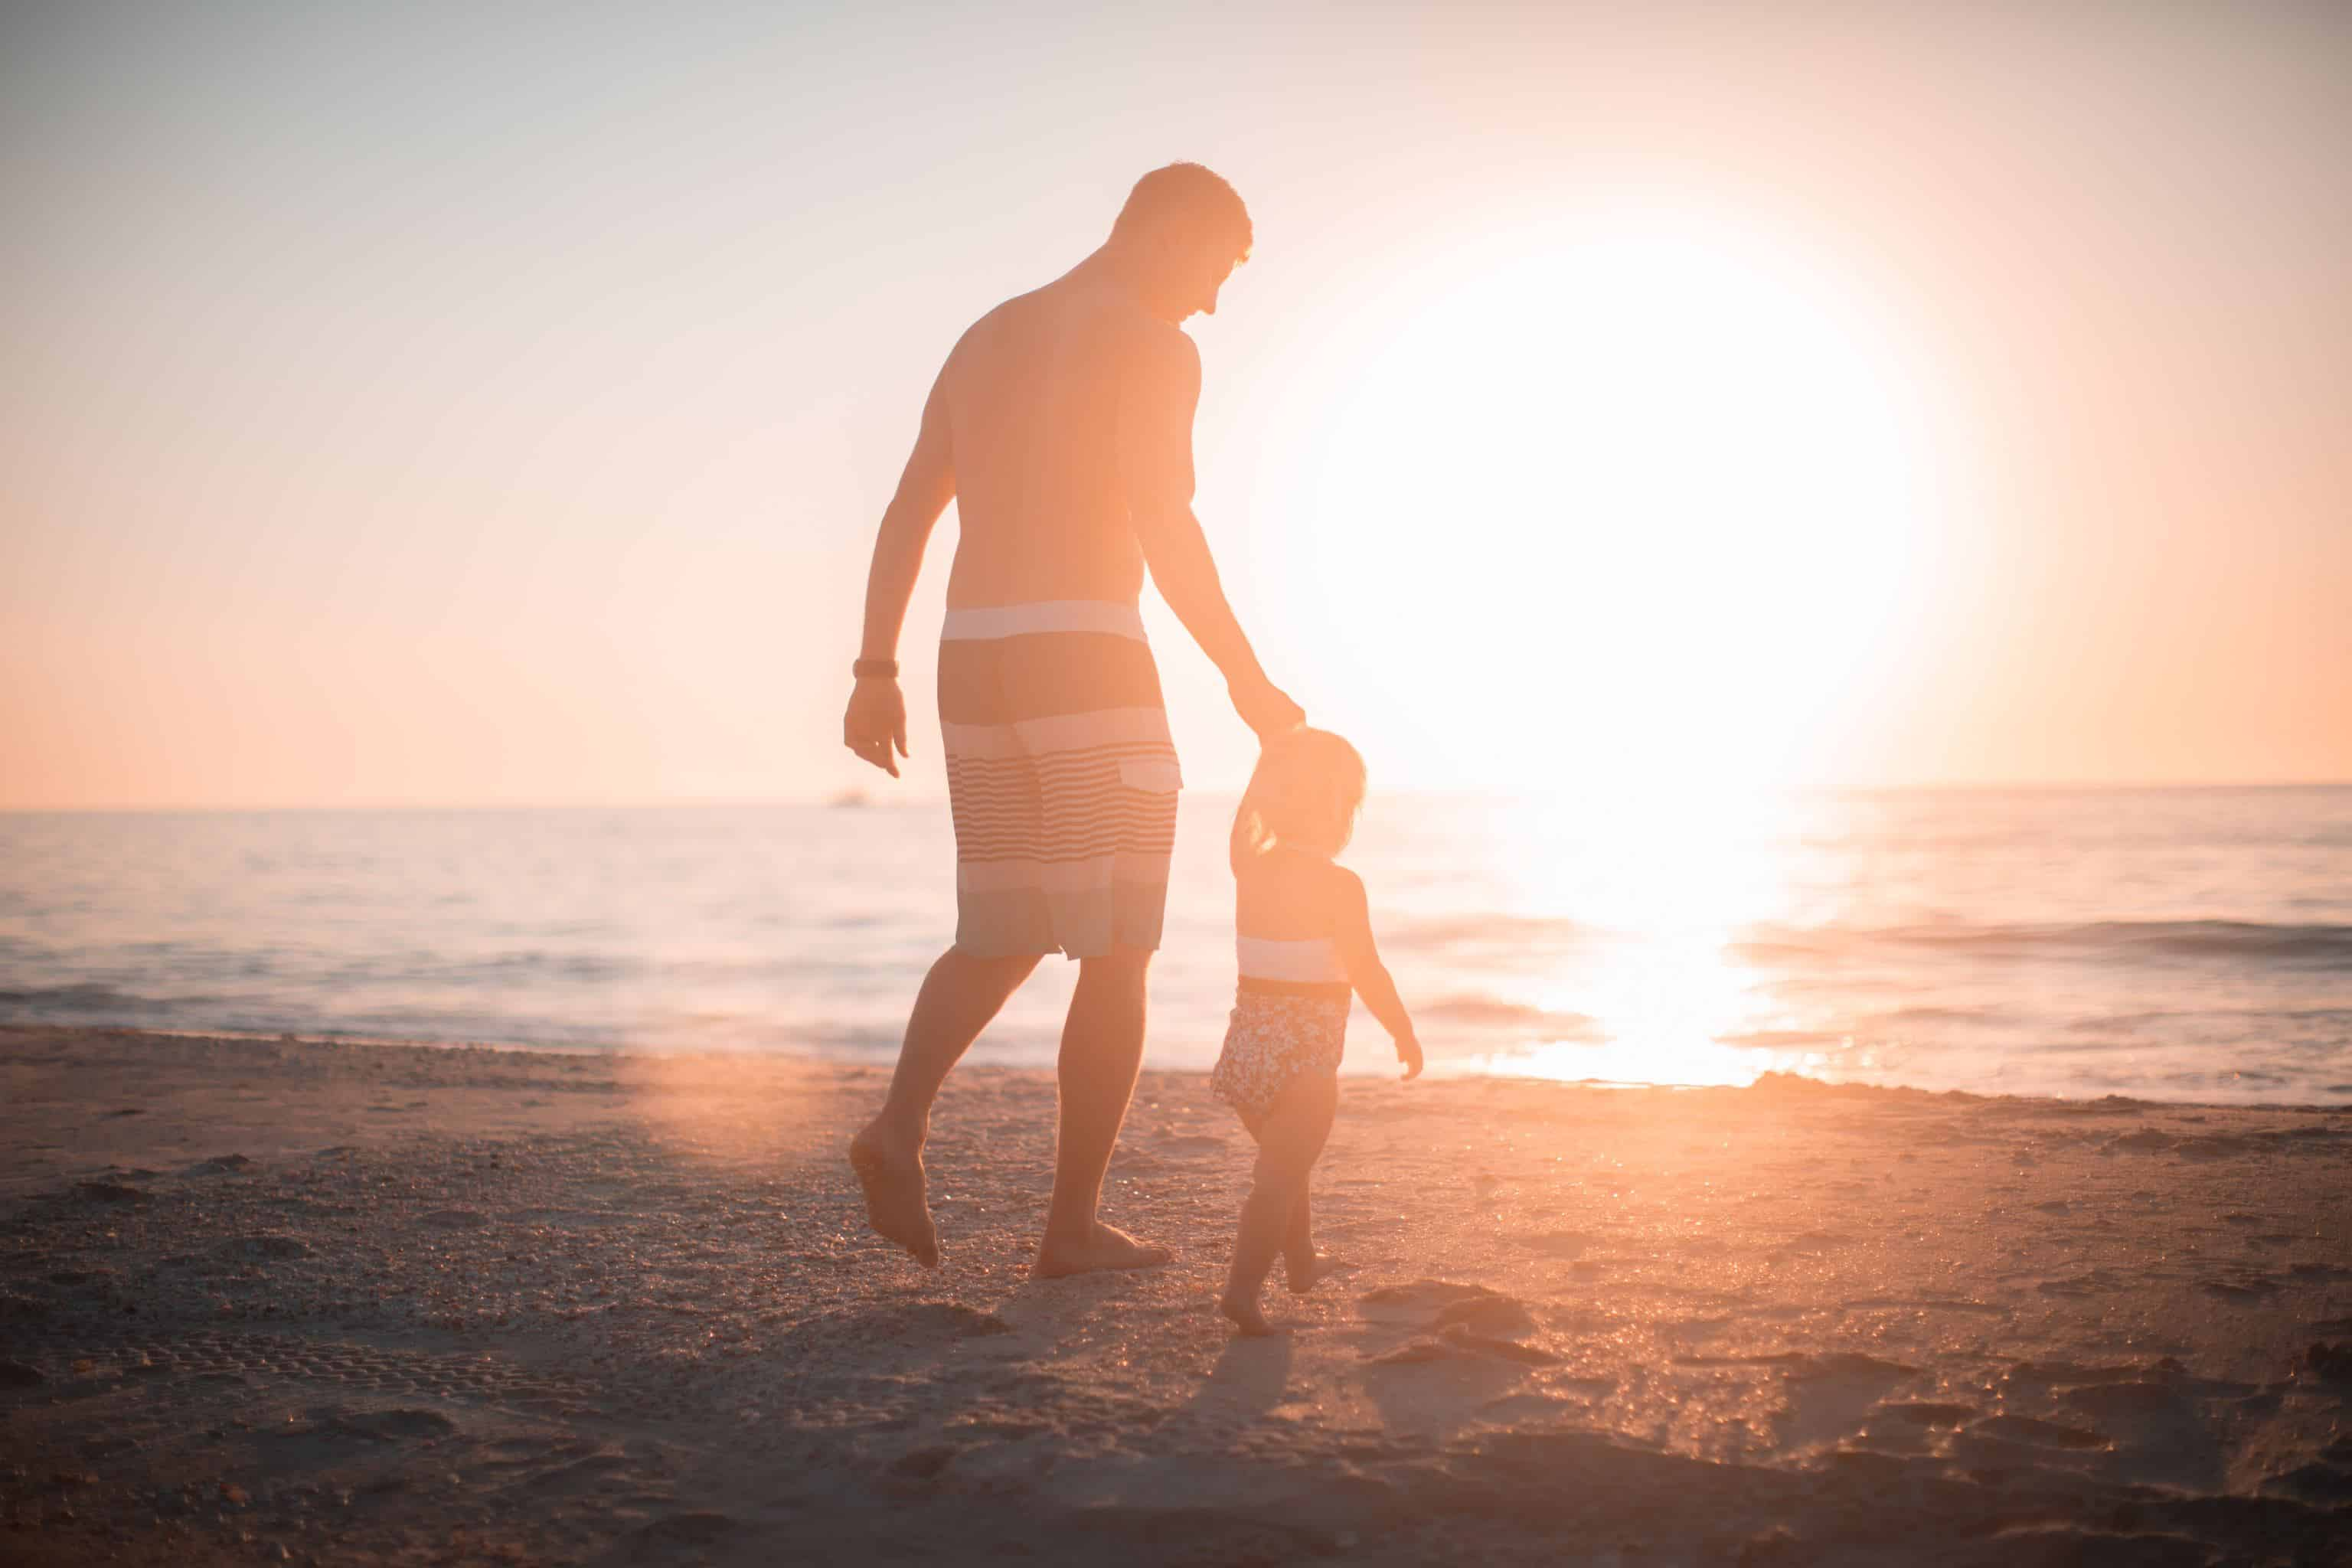 fathers day messages thumbnal: man holding child's hand walking on a beach